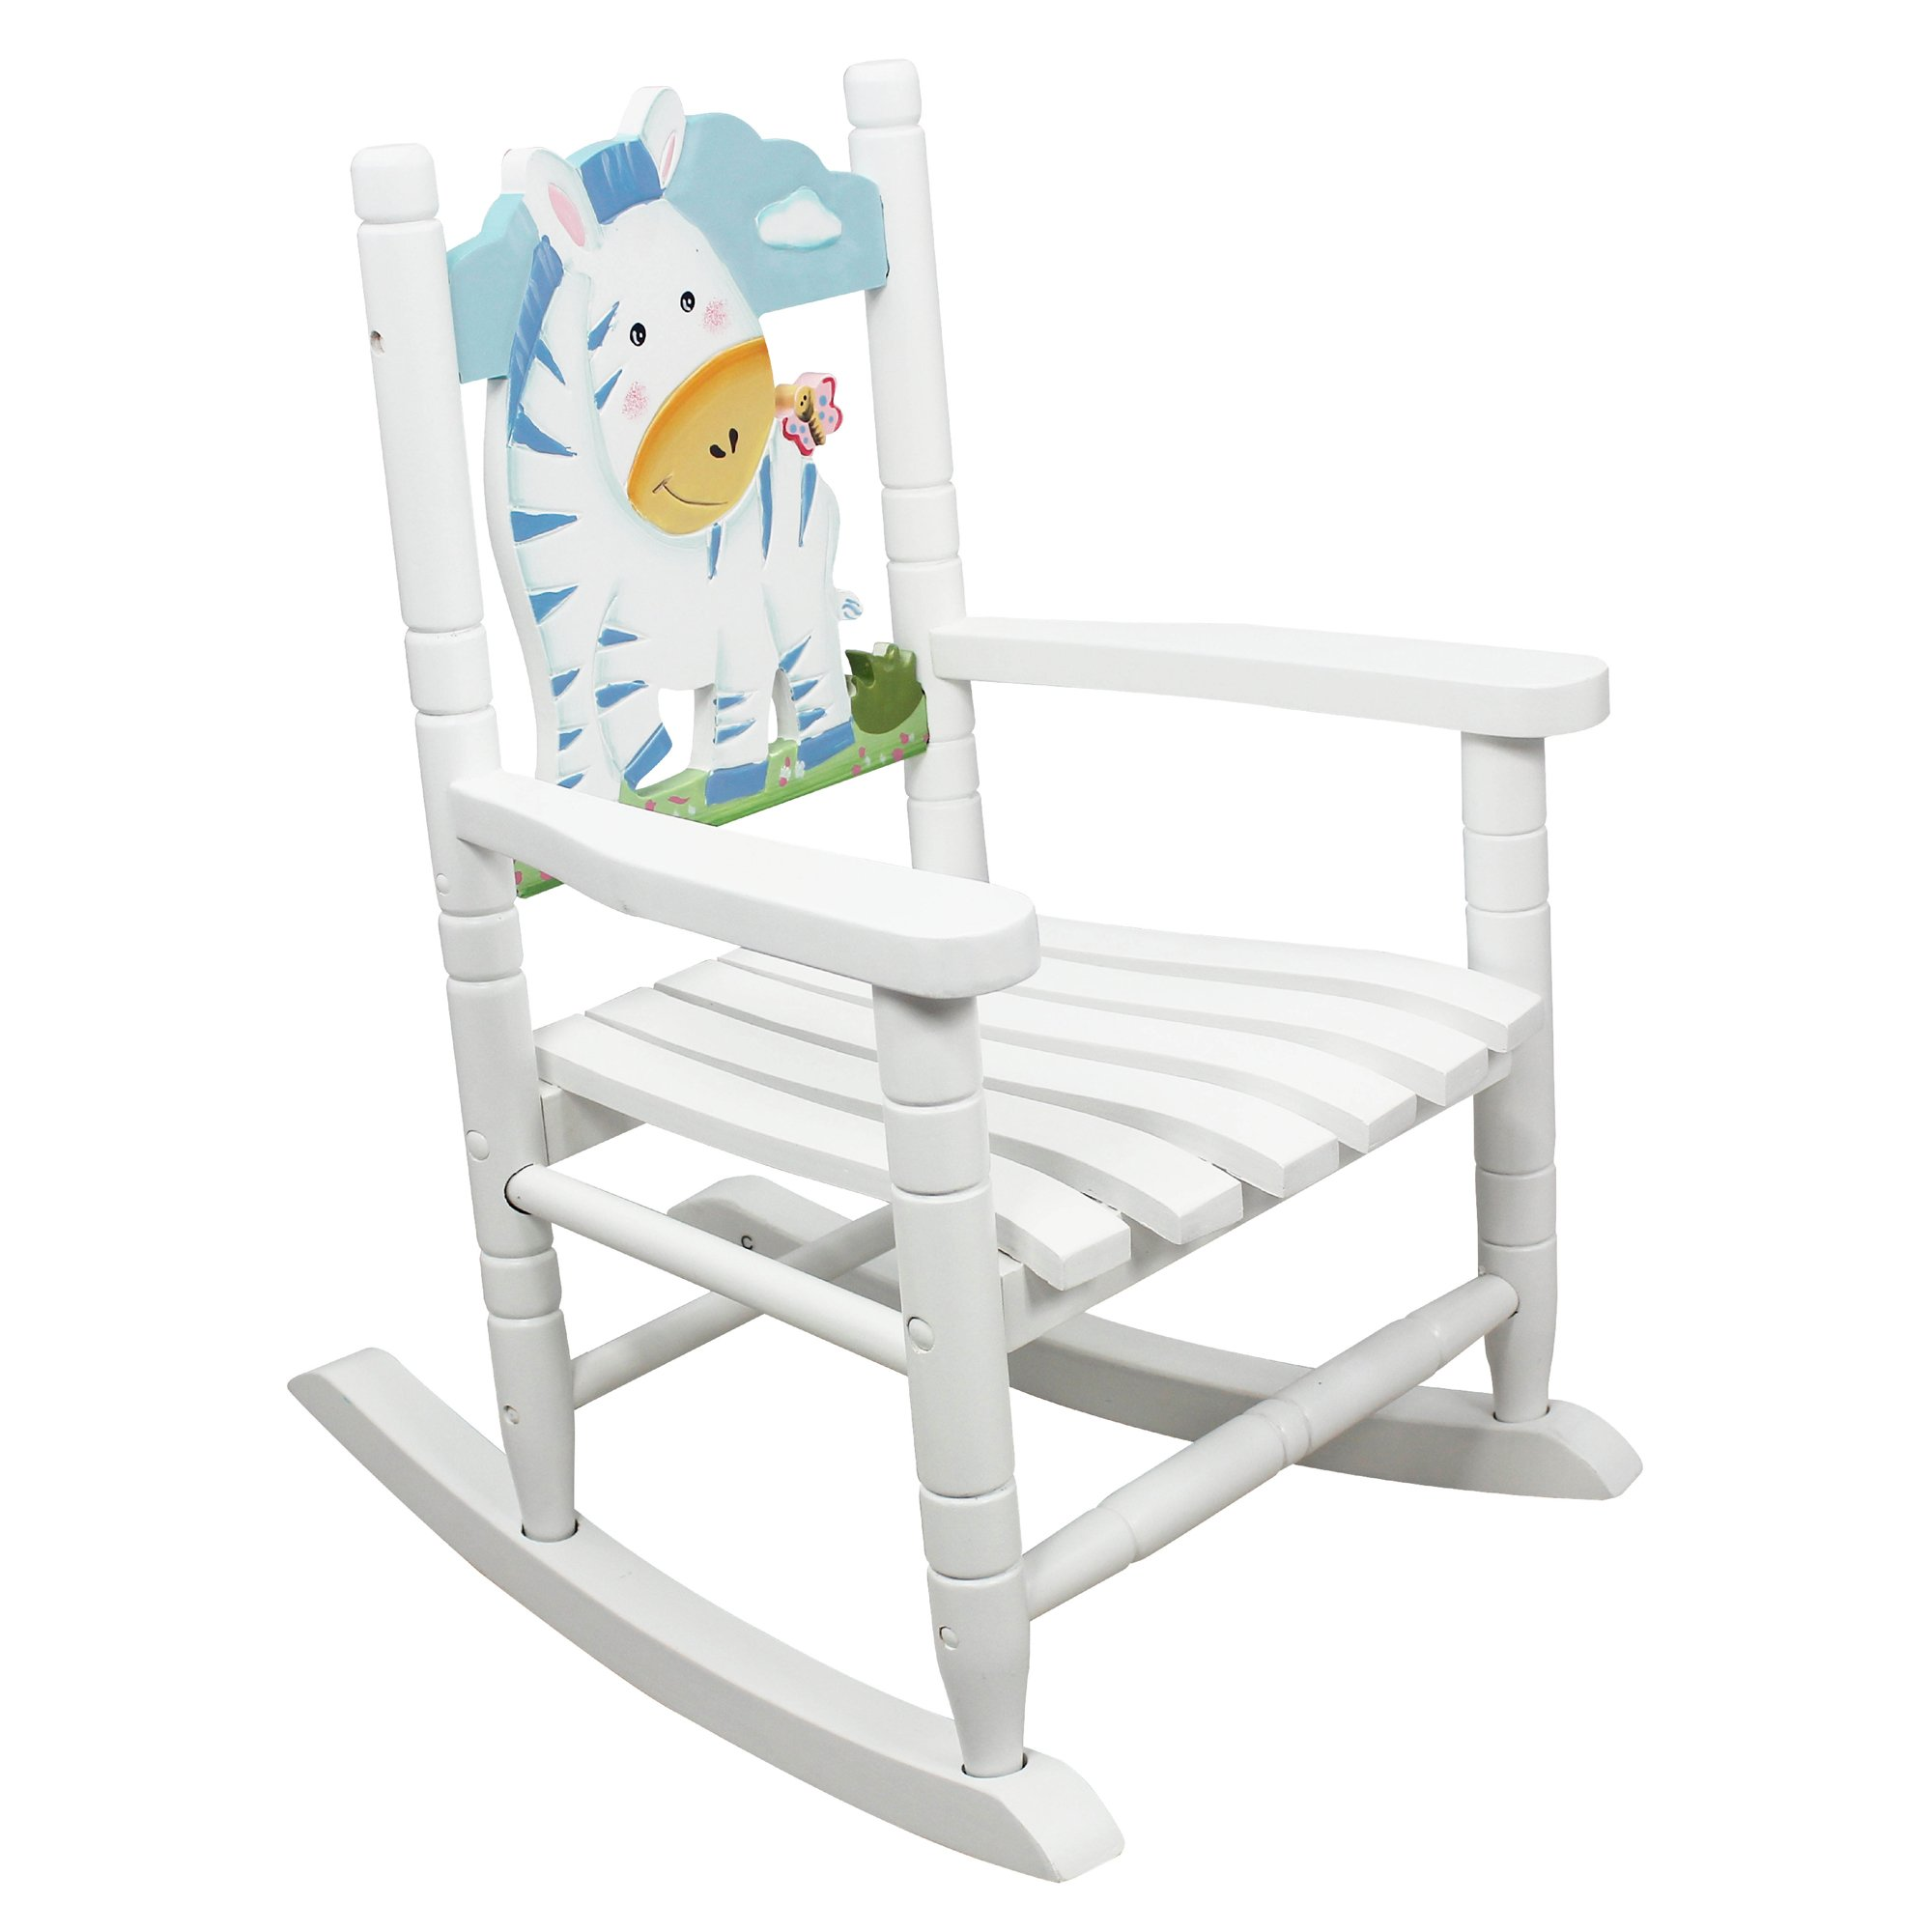 Teamson Kids - Safari Wooden Rocking Chair for Children - Zebra